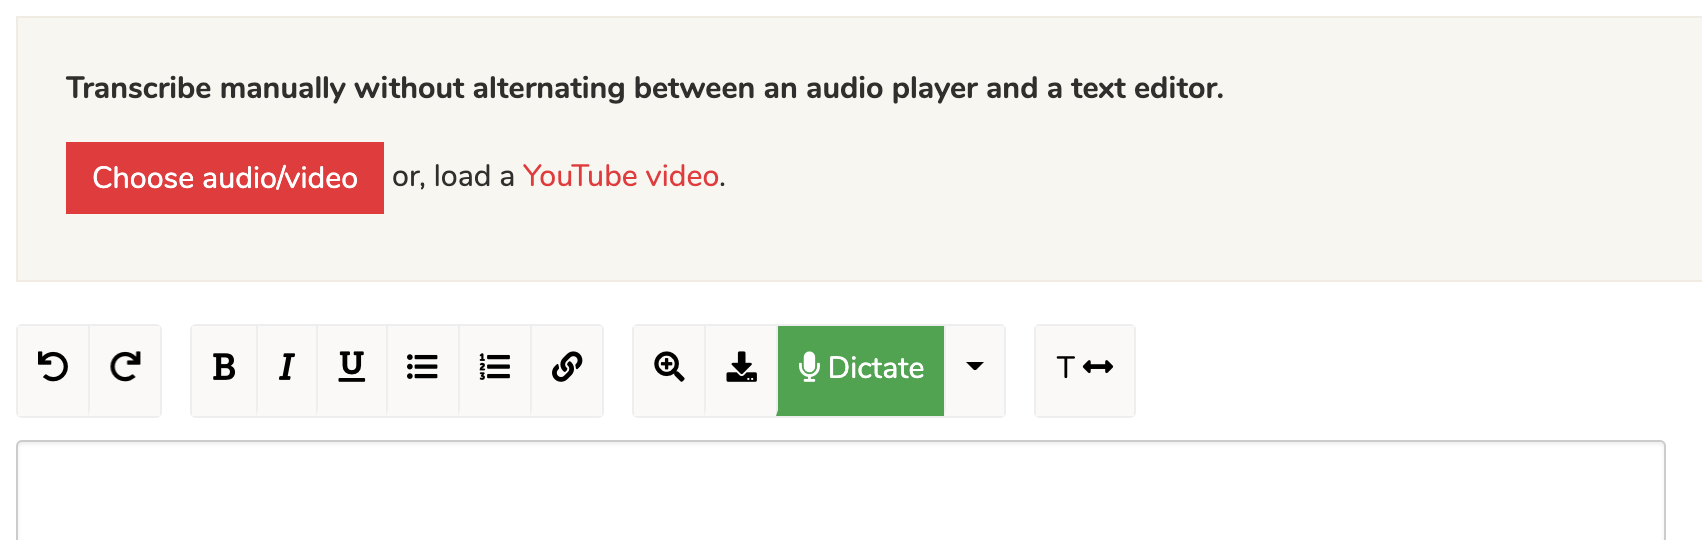 Upload audio for self transcription.